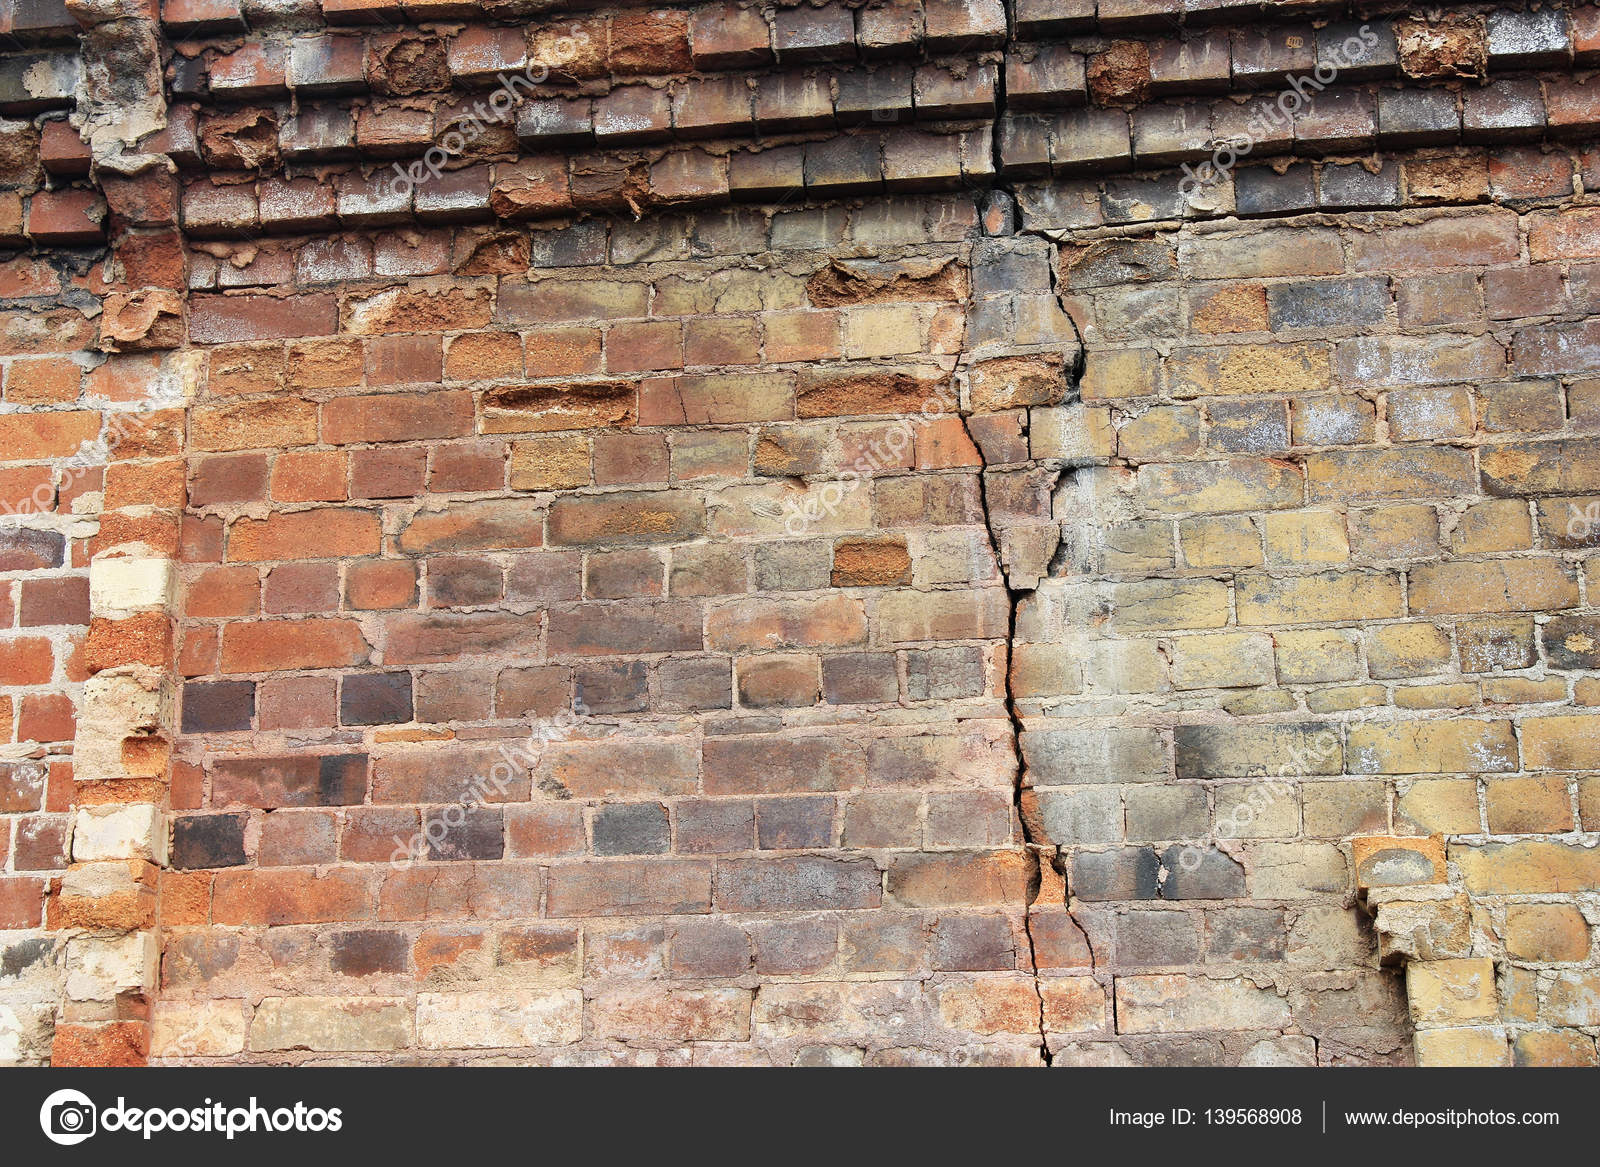 Close Up View Of Cracked Old Building Brick Wall With Eroded Bricks On Top Background Concept Photo By Ekays